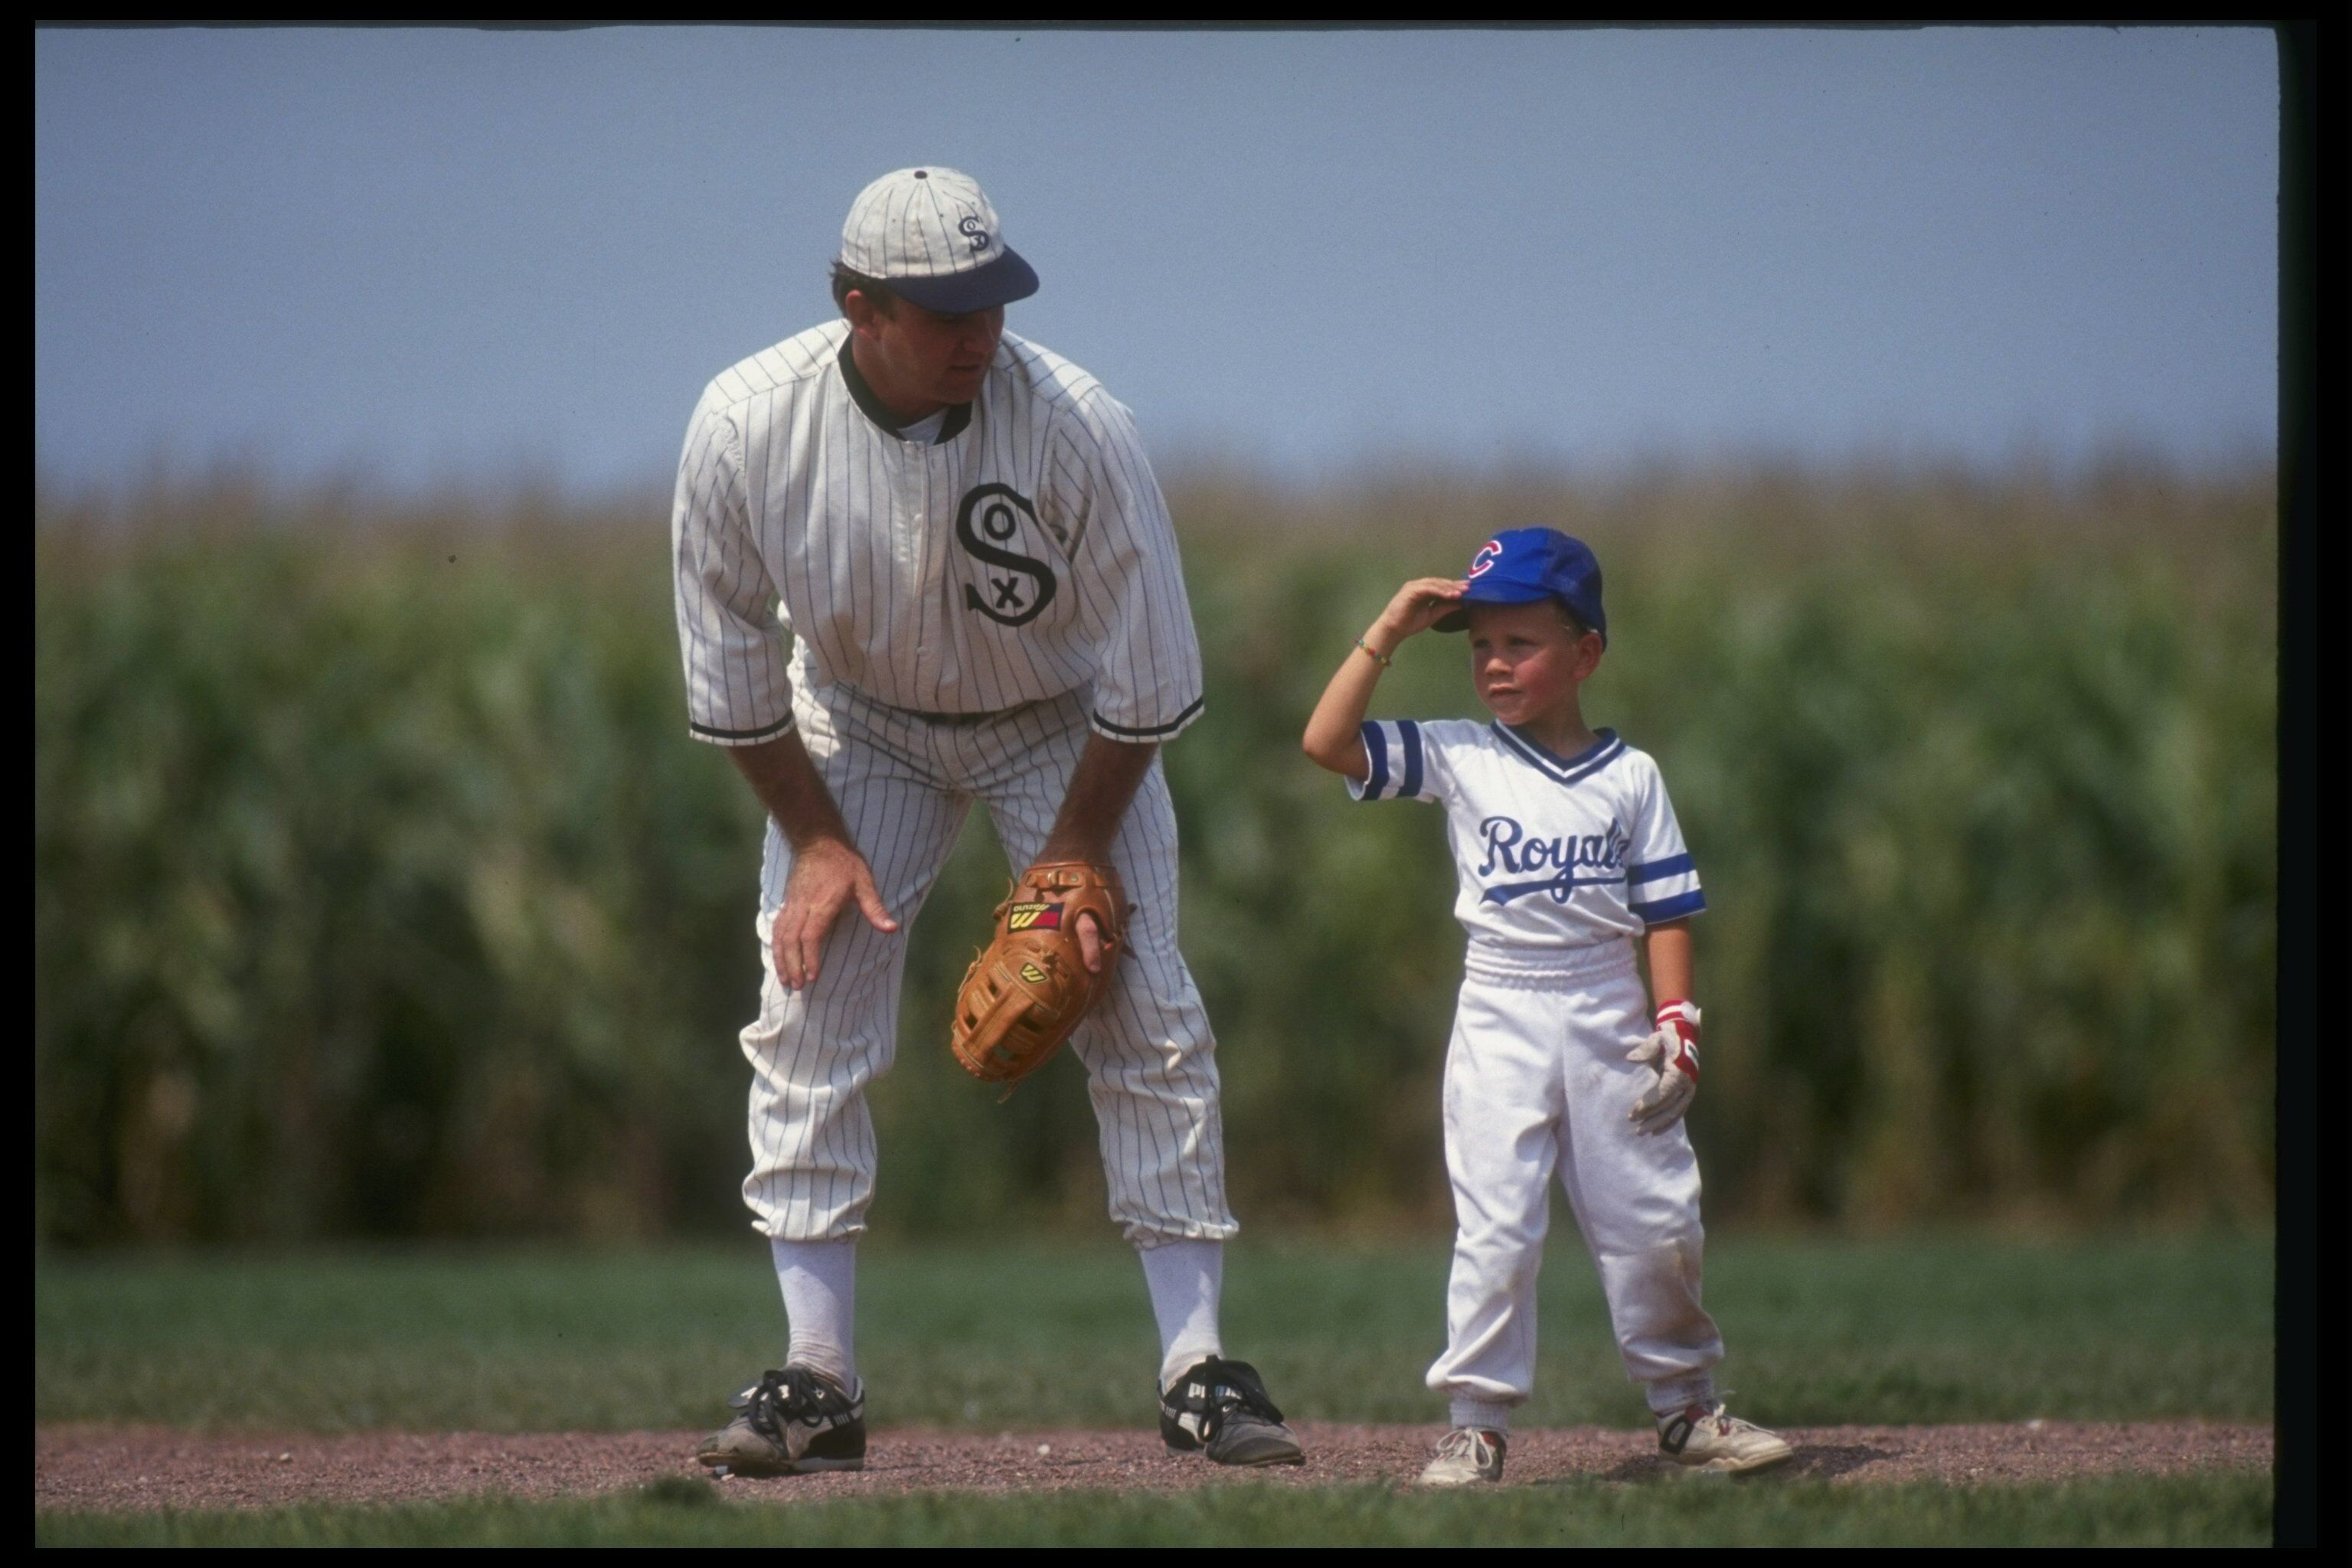 278660-film-location-for-the-movie-field-of-dreams.jpg